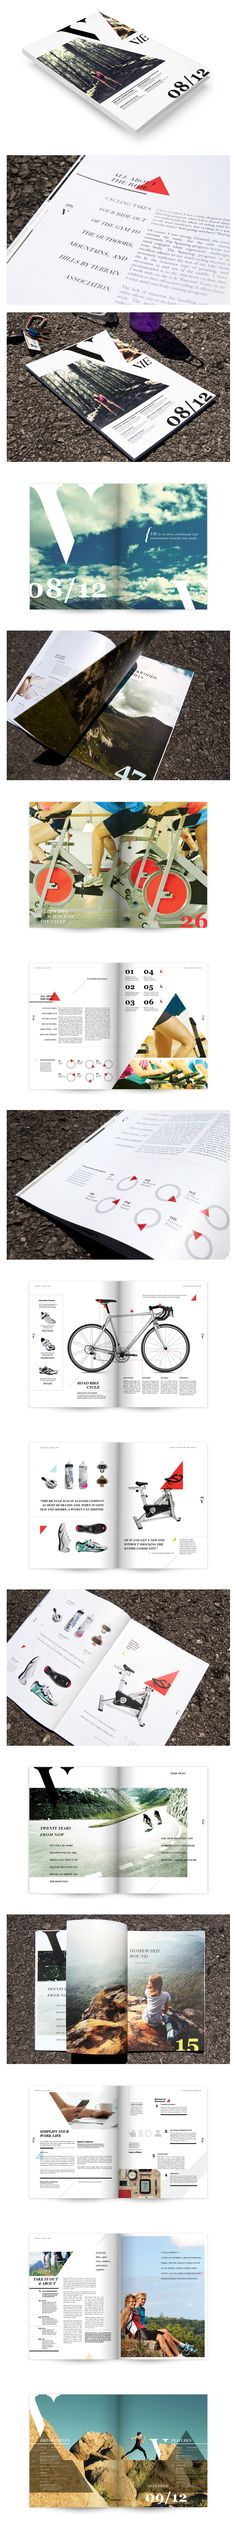 Vie Magazine triangle editorial layout design based on the bike shape